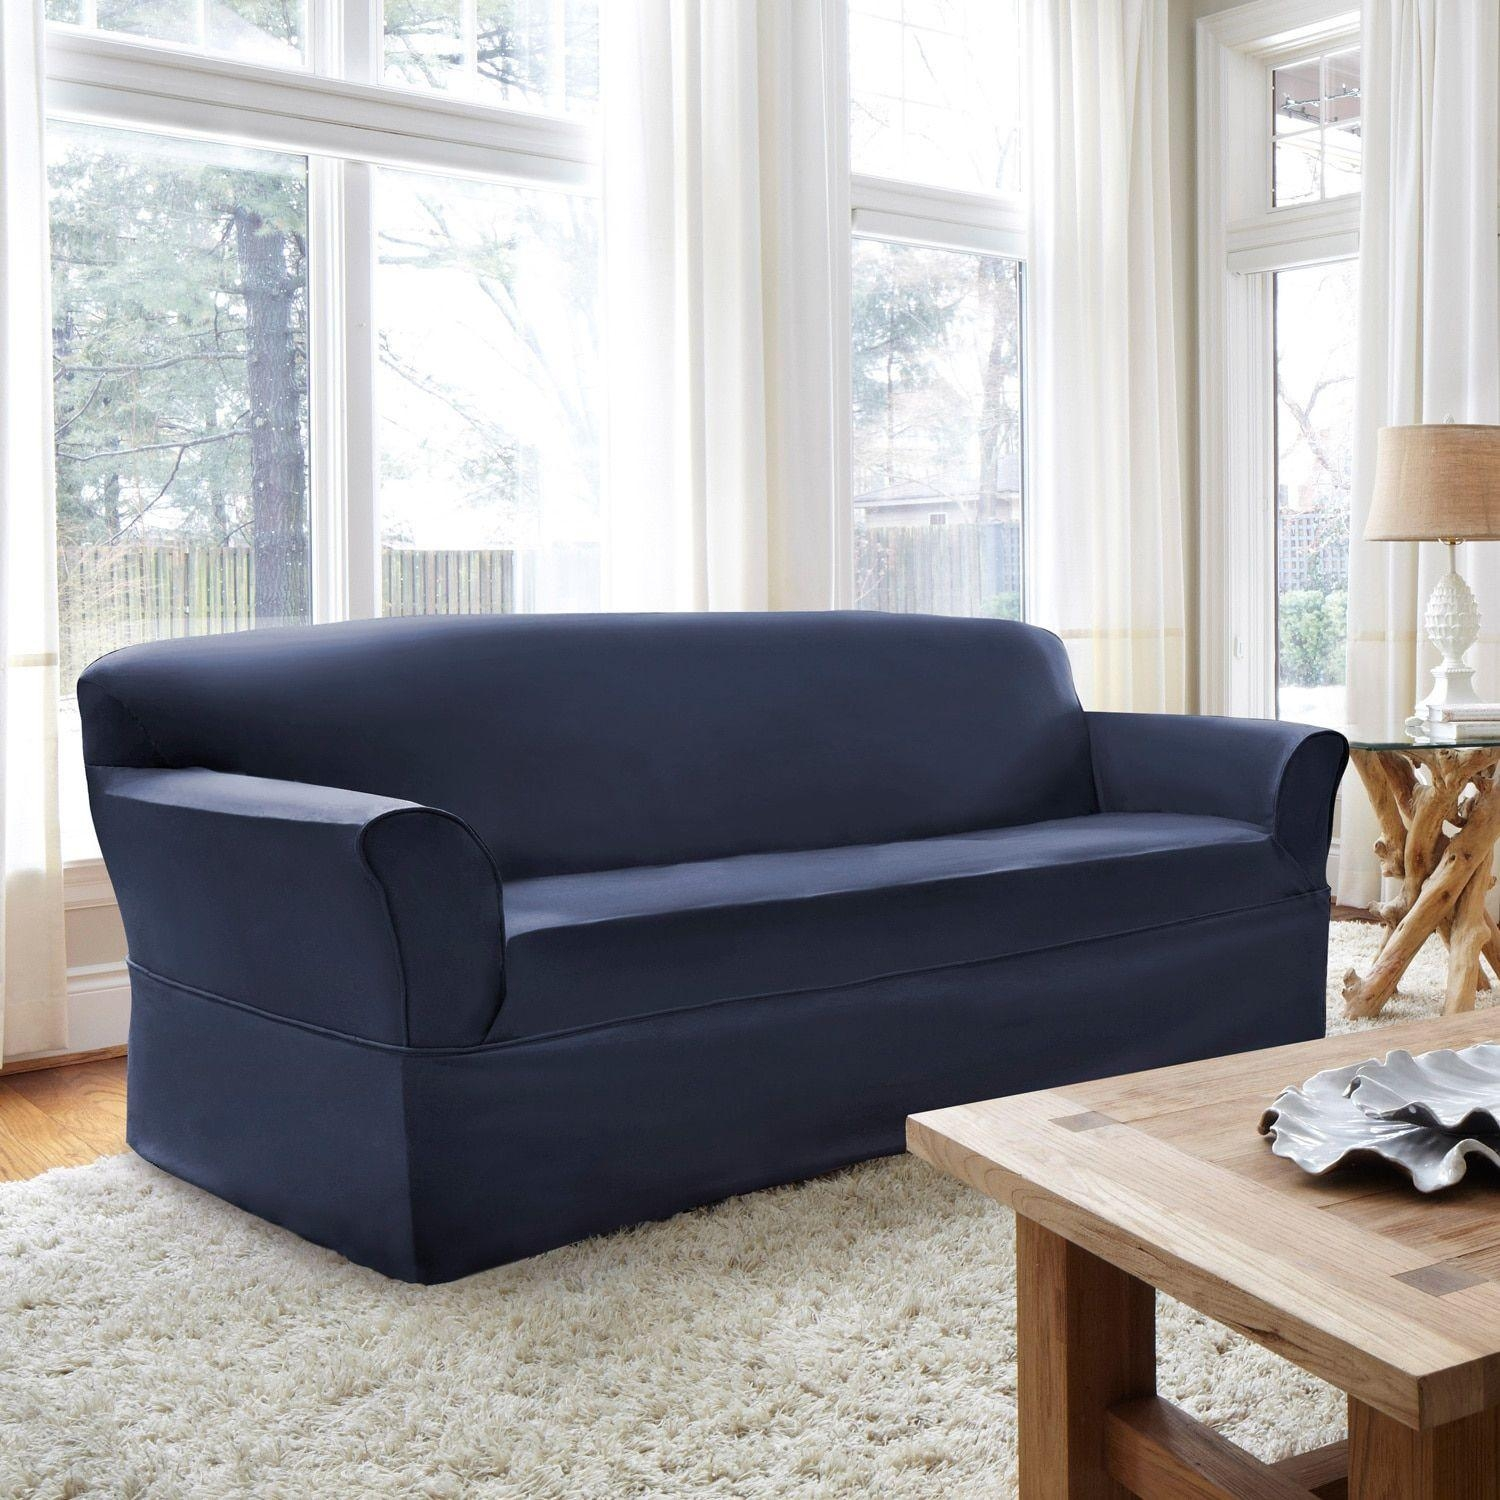 Ideas: Chic Pottery Barn Slipcovers For Better Sofa And Chair Look With Mitchell Gold Sofa Slipcovers (View 5 of 20)